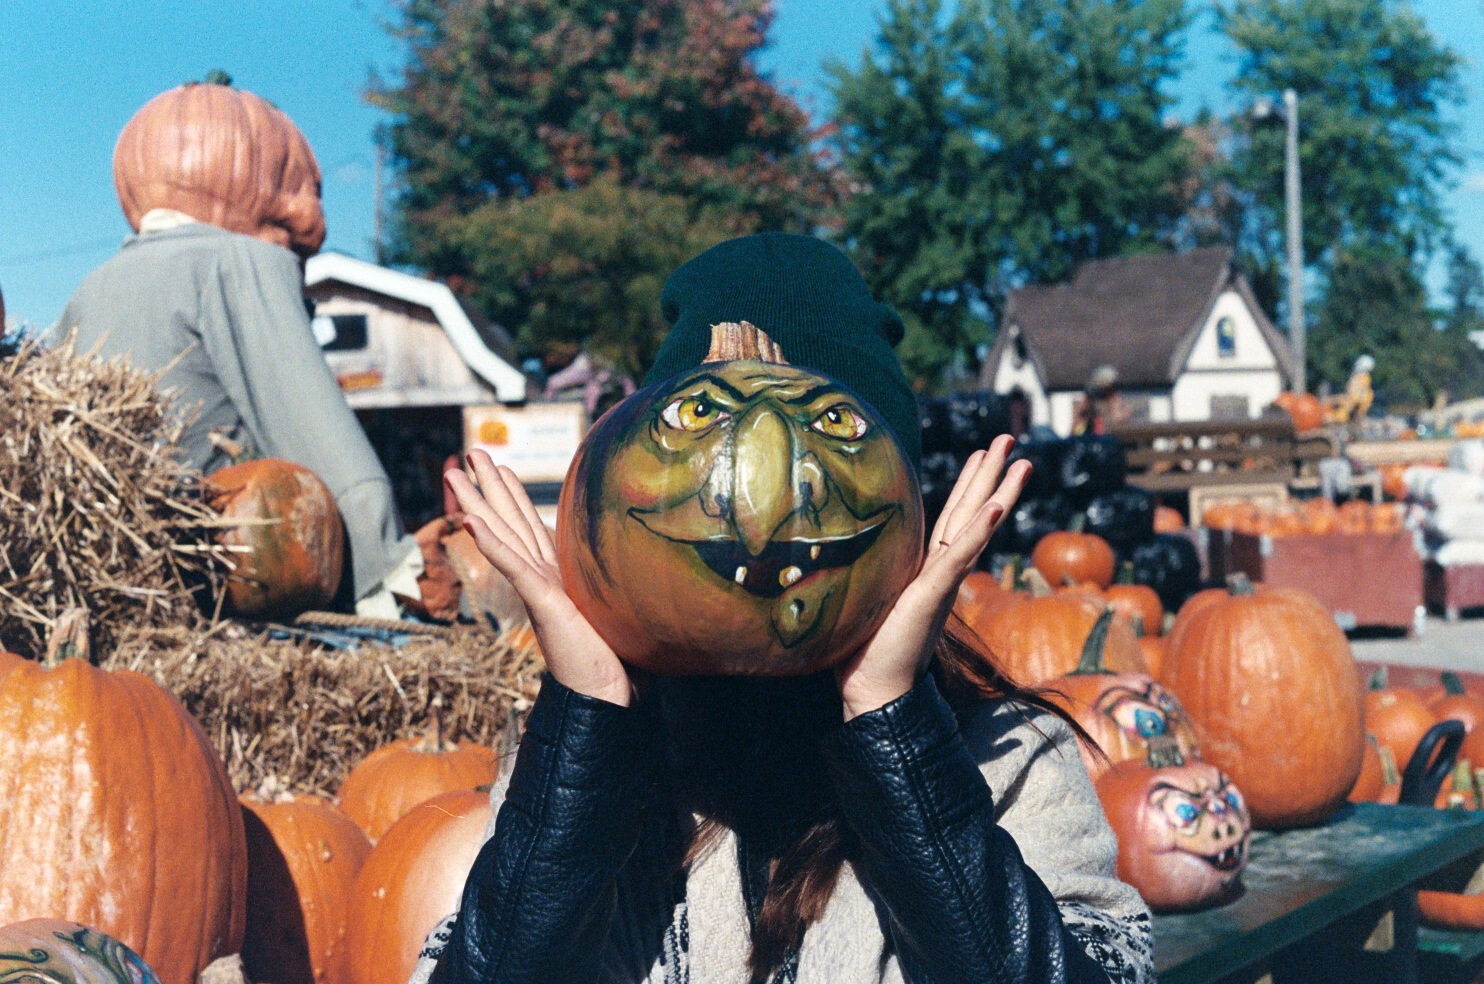 Pumpkin Patch | 35mm